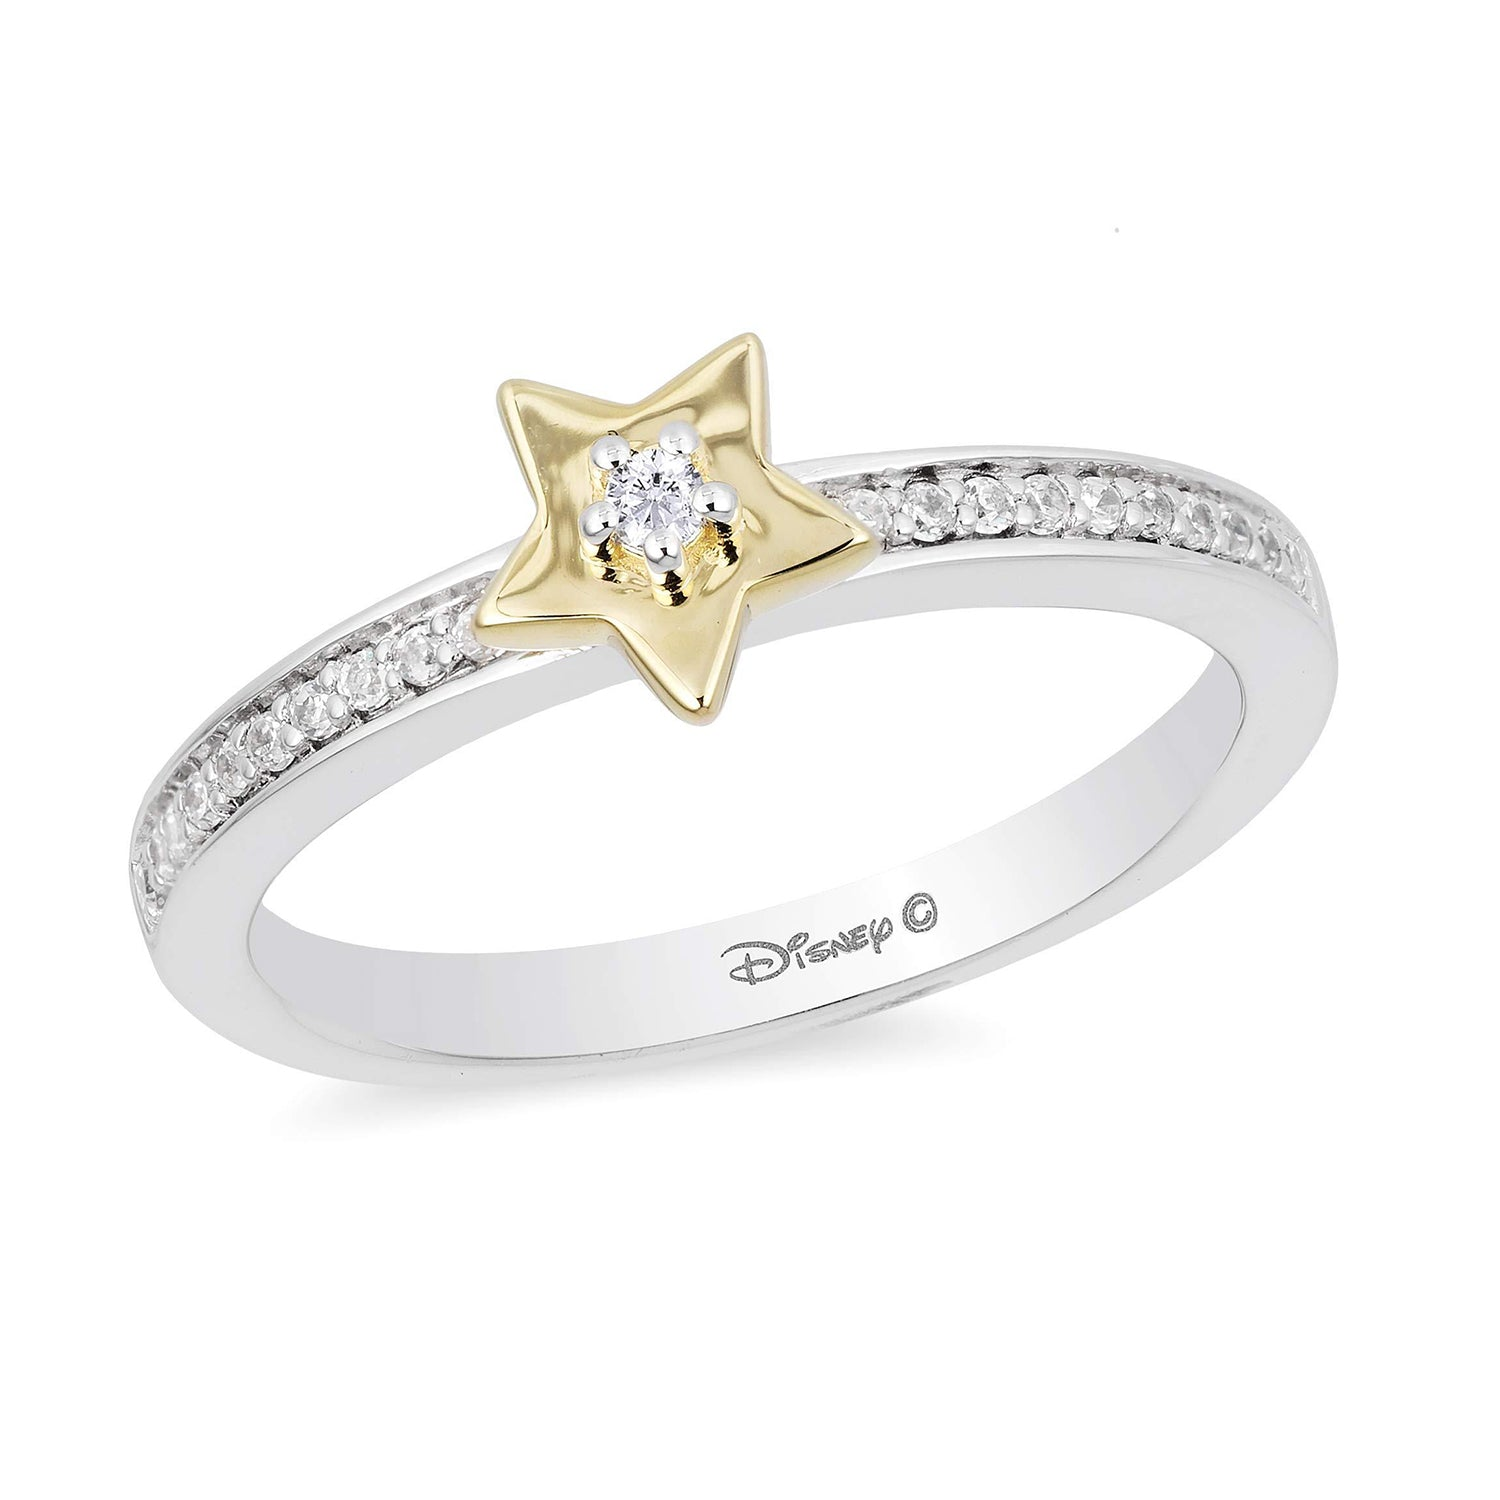 enchanted_disney-tinker-bell_ring-10k_yellow_gold_and_sterling_silver_1/10CTTW_1